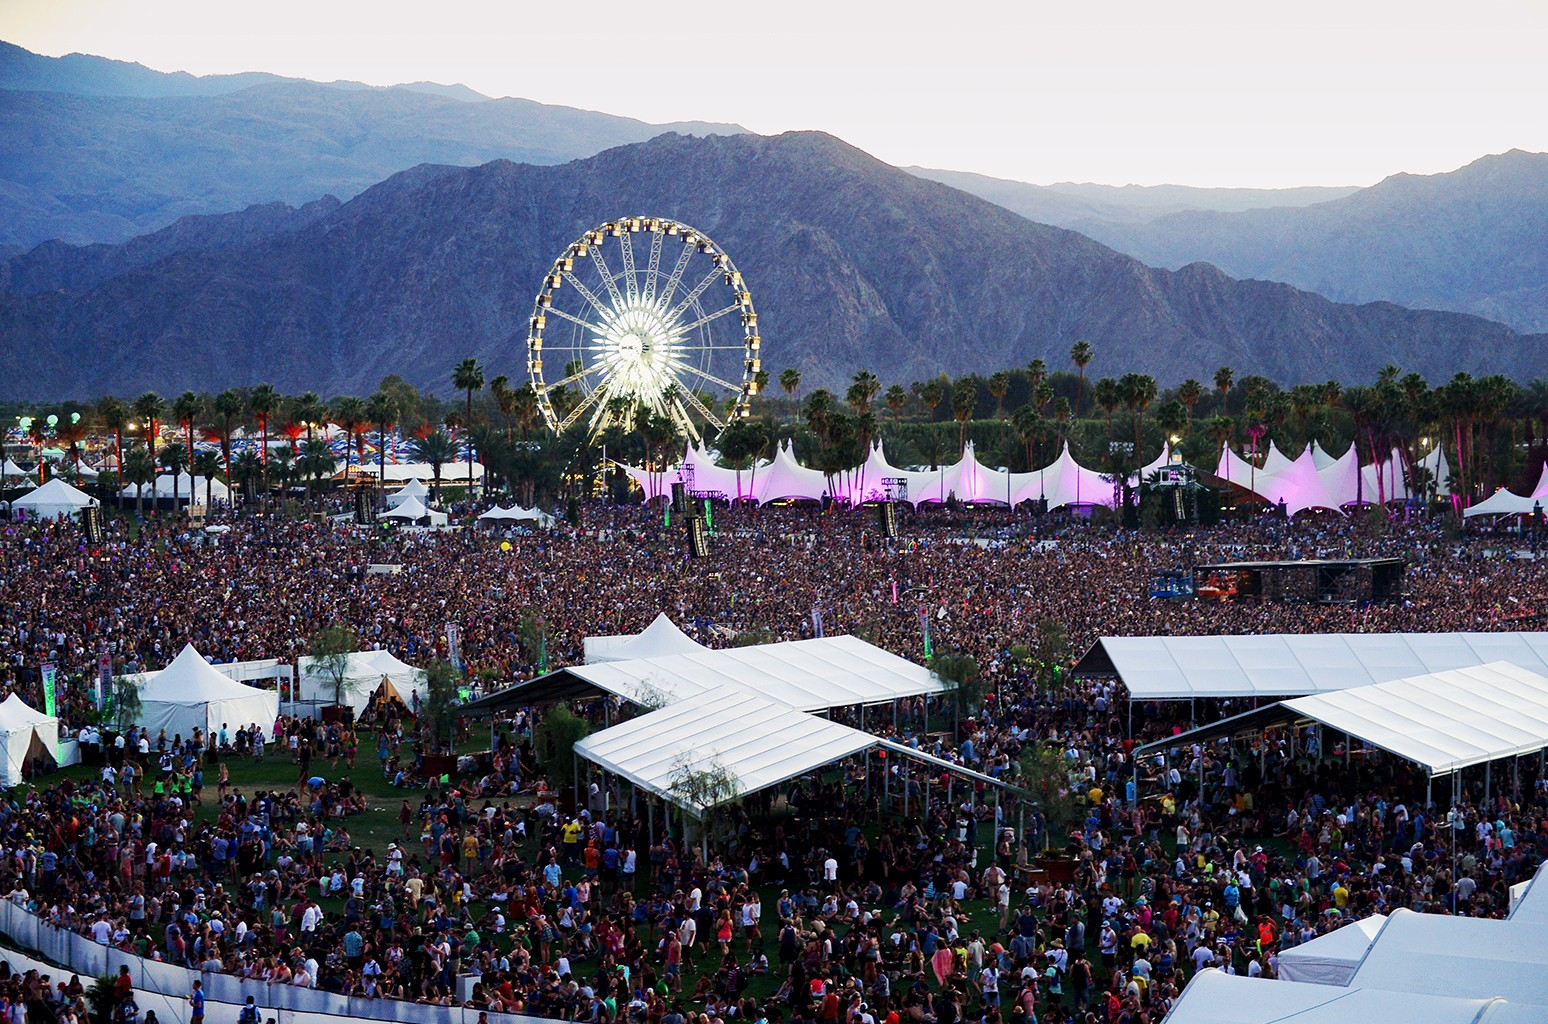 A general view of the atmosphere during day 1 of the 2014 Coachella Valley Music & Arts Festival at the Empire Polo Club on April 11, 2014 in Indio, Calif.